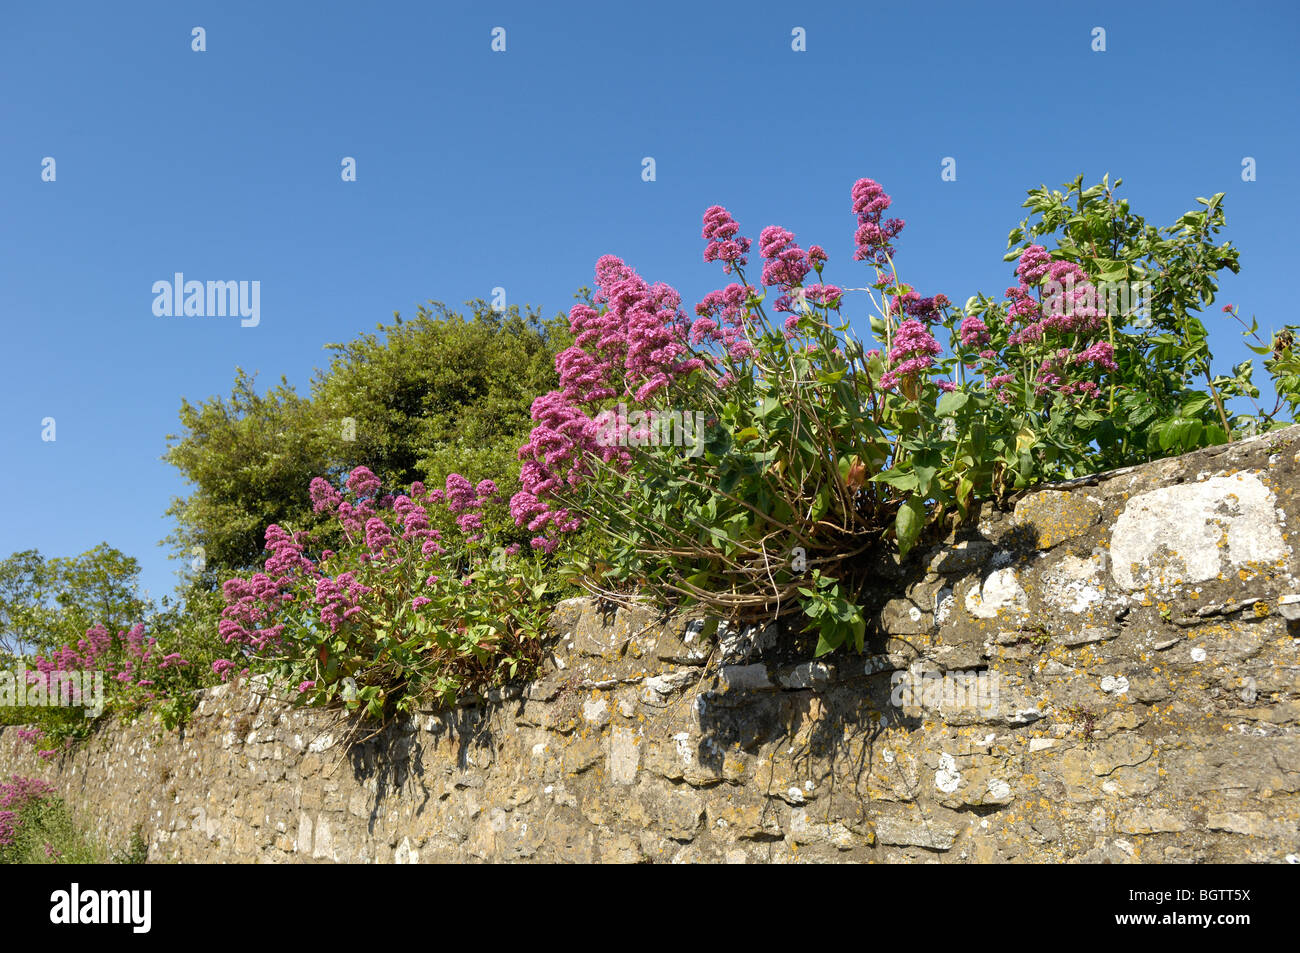 Red Valerian (Centranthus ruber) growing in old stone wall, Dorset, UK. - Stock Image